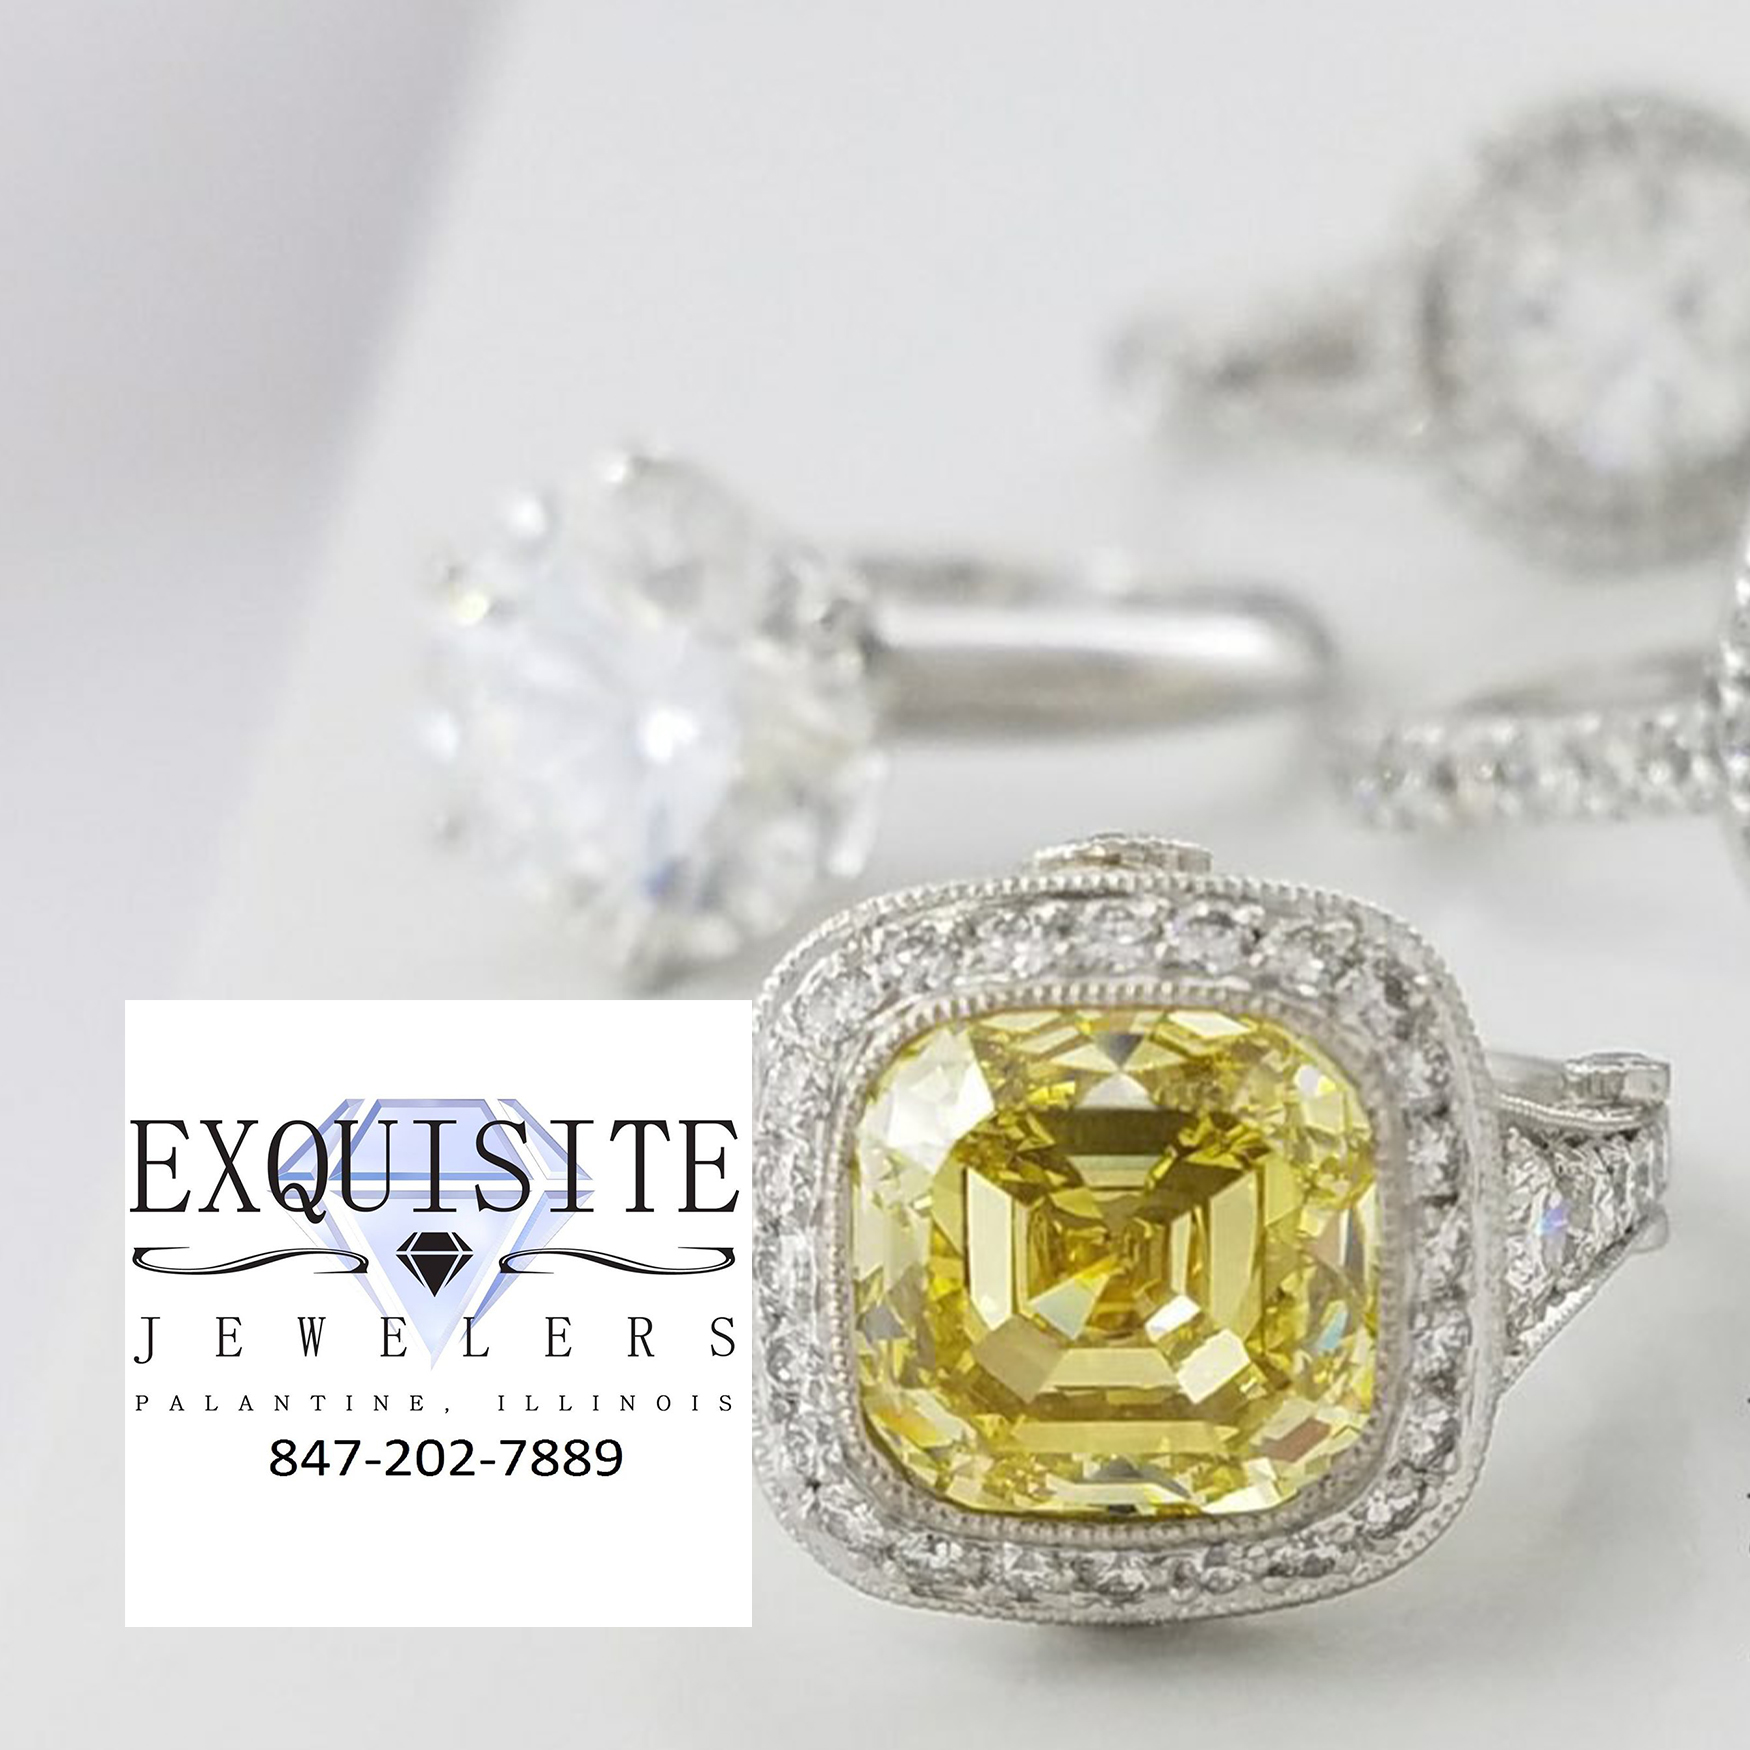 Exquisite Jewelers